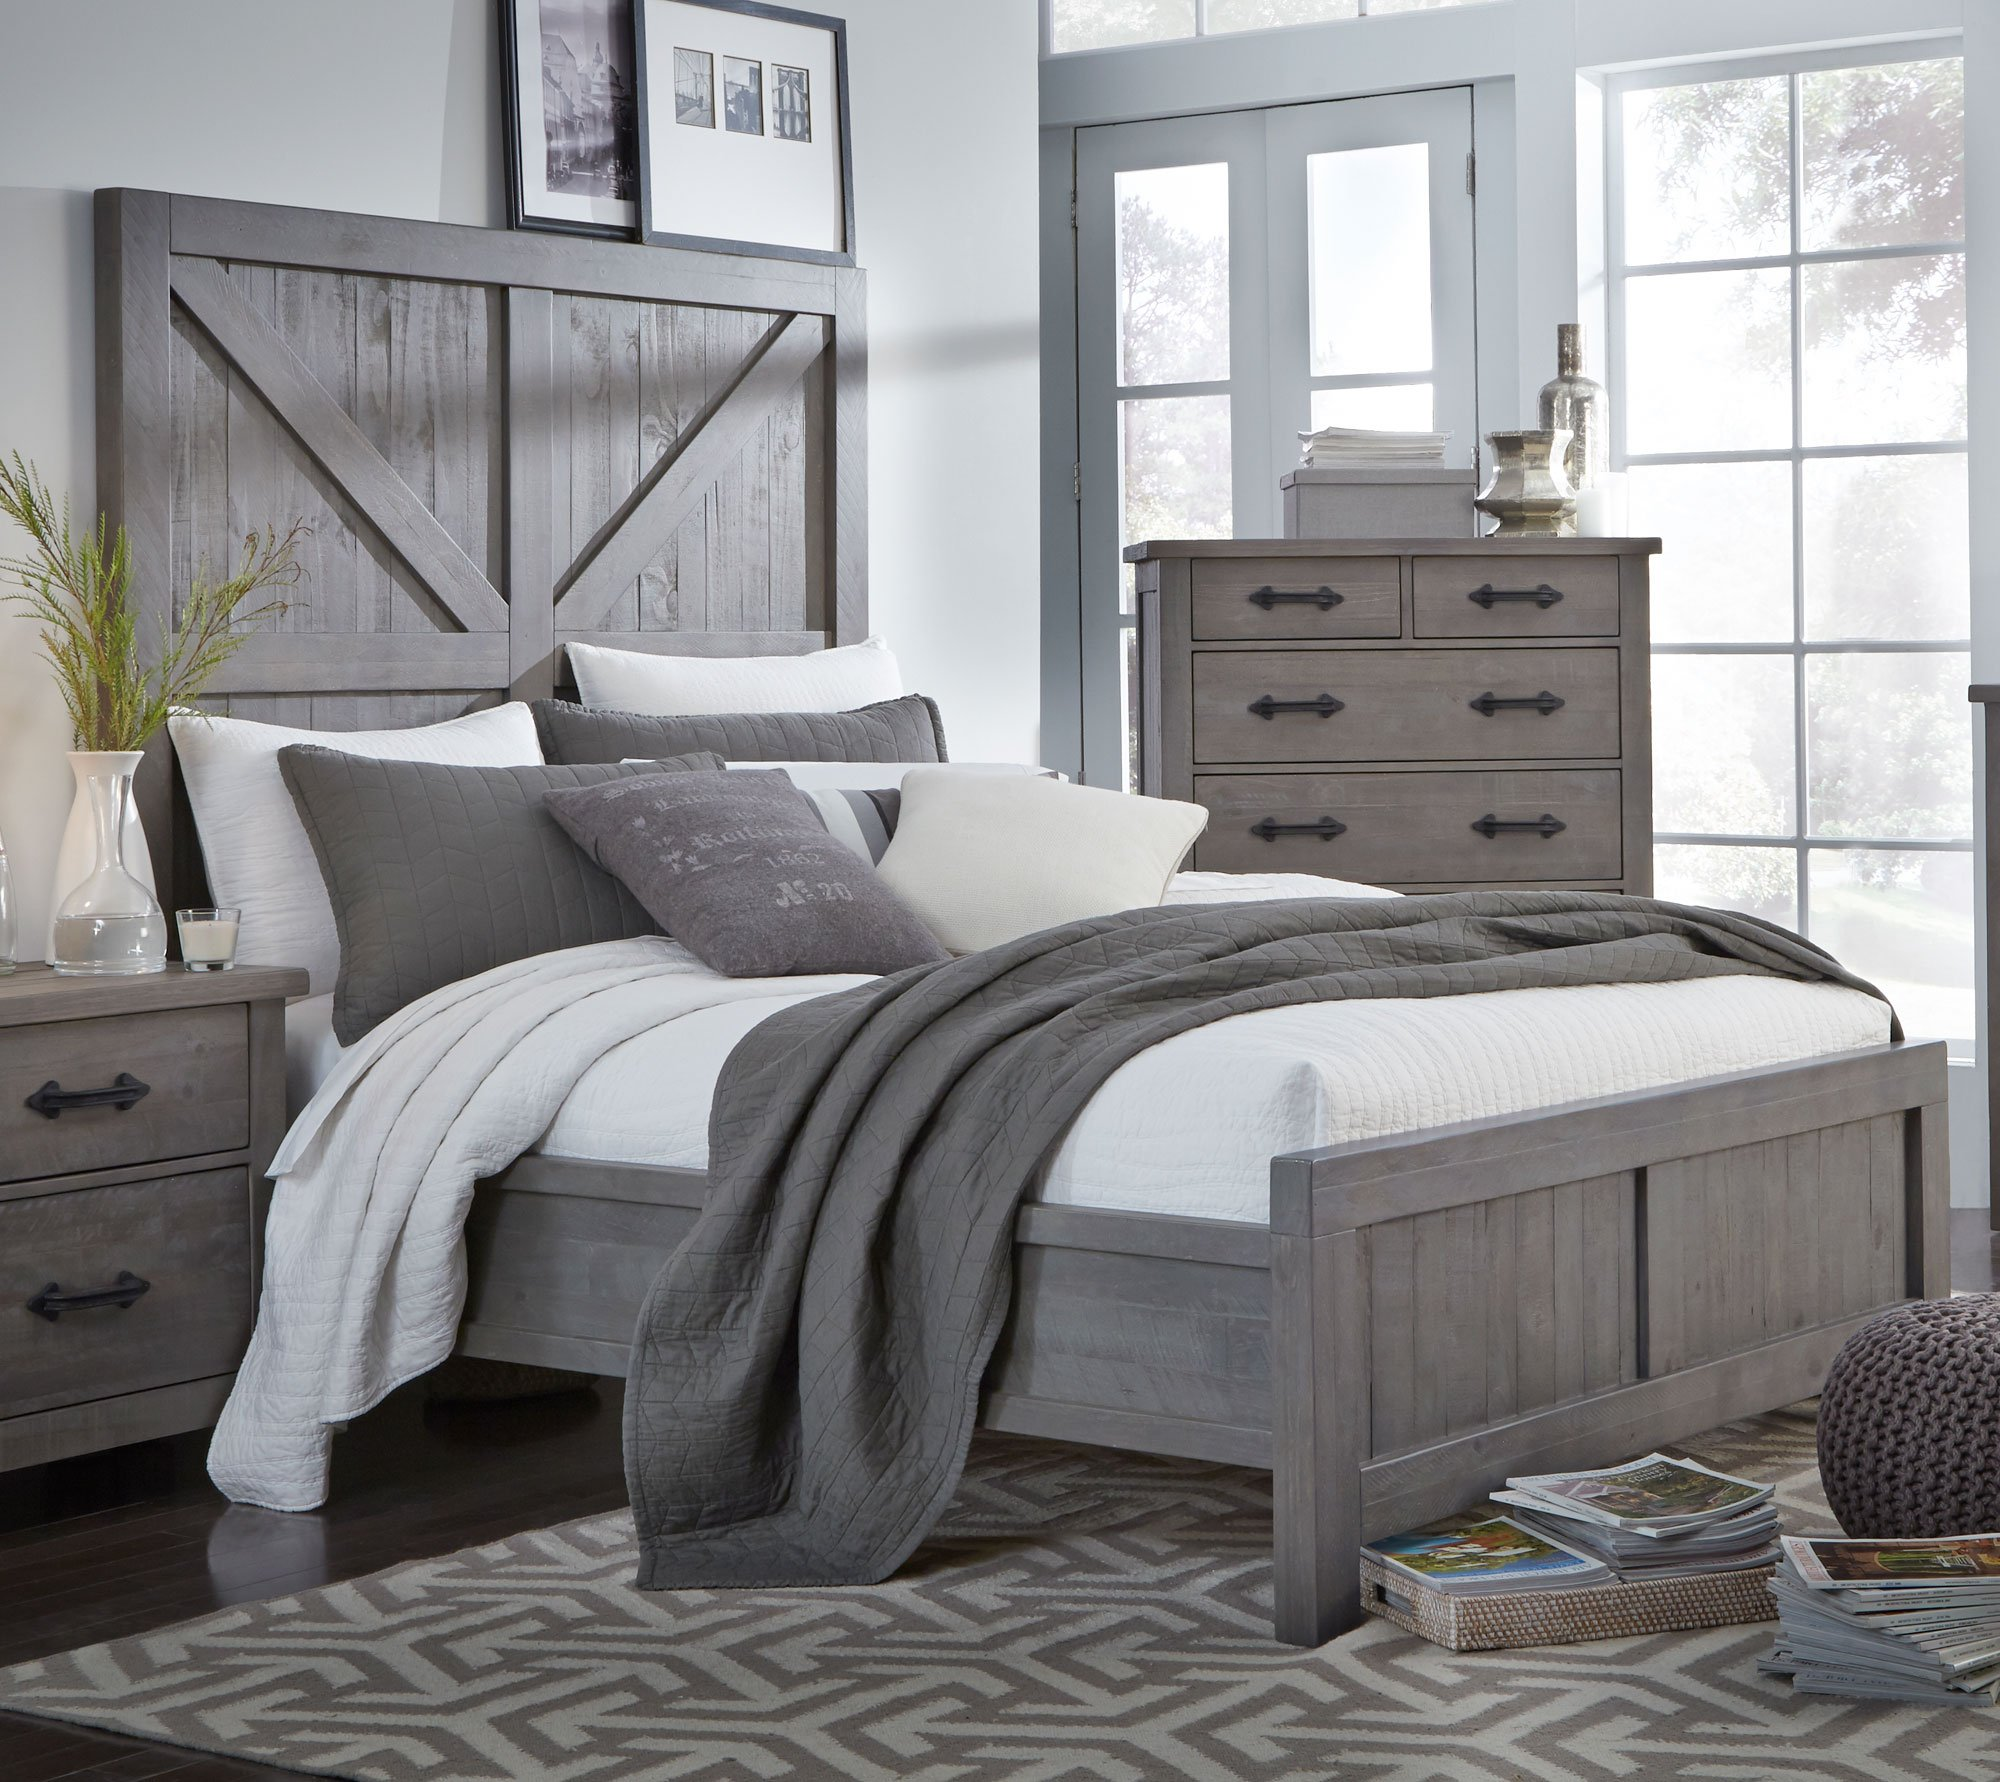 gray rustic contemporary 6 piece king bedroom set austin rc willey furniture store. Black Bedroom Furniture Sets. Home Design Ideas